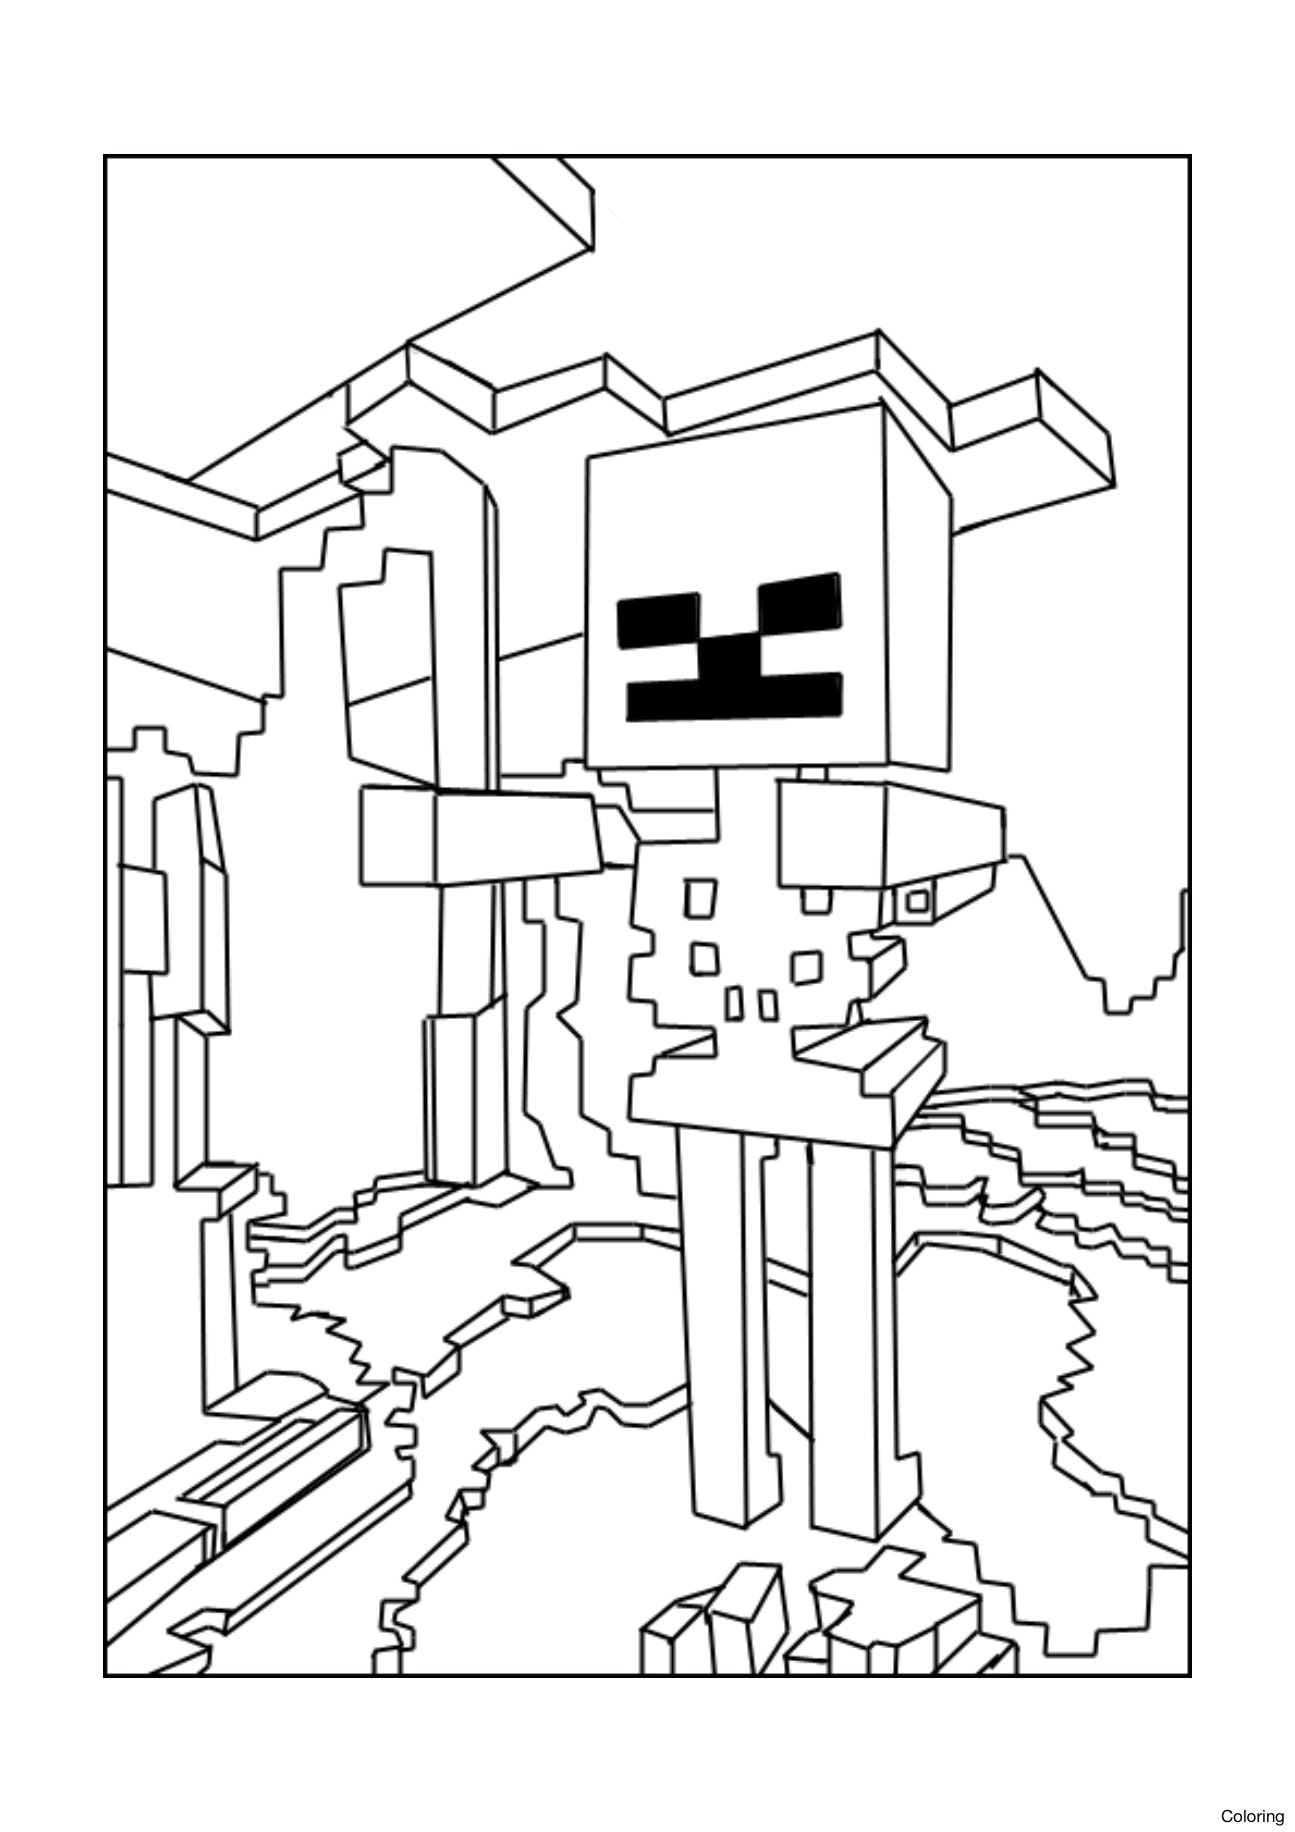 Ausmalbilder Minecraft Creeper : Creeper Minecraft Drawing At Getdrawings Com Free For Personal Use